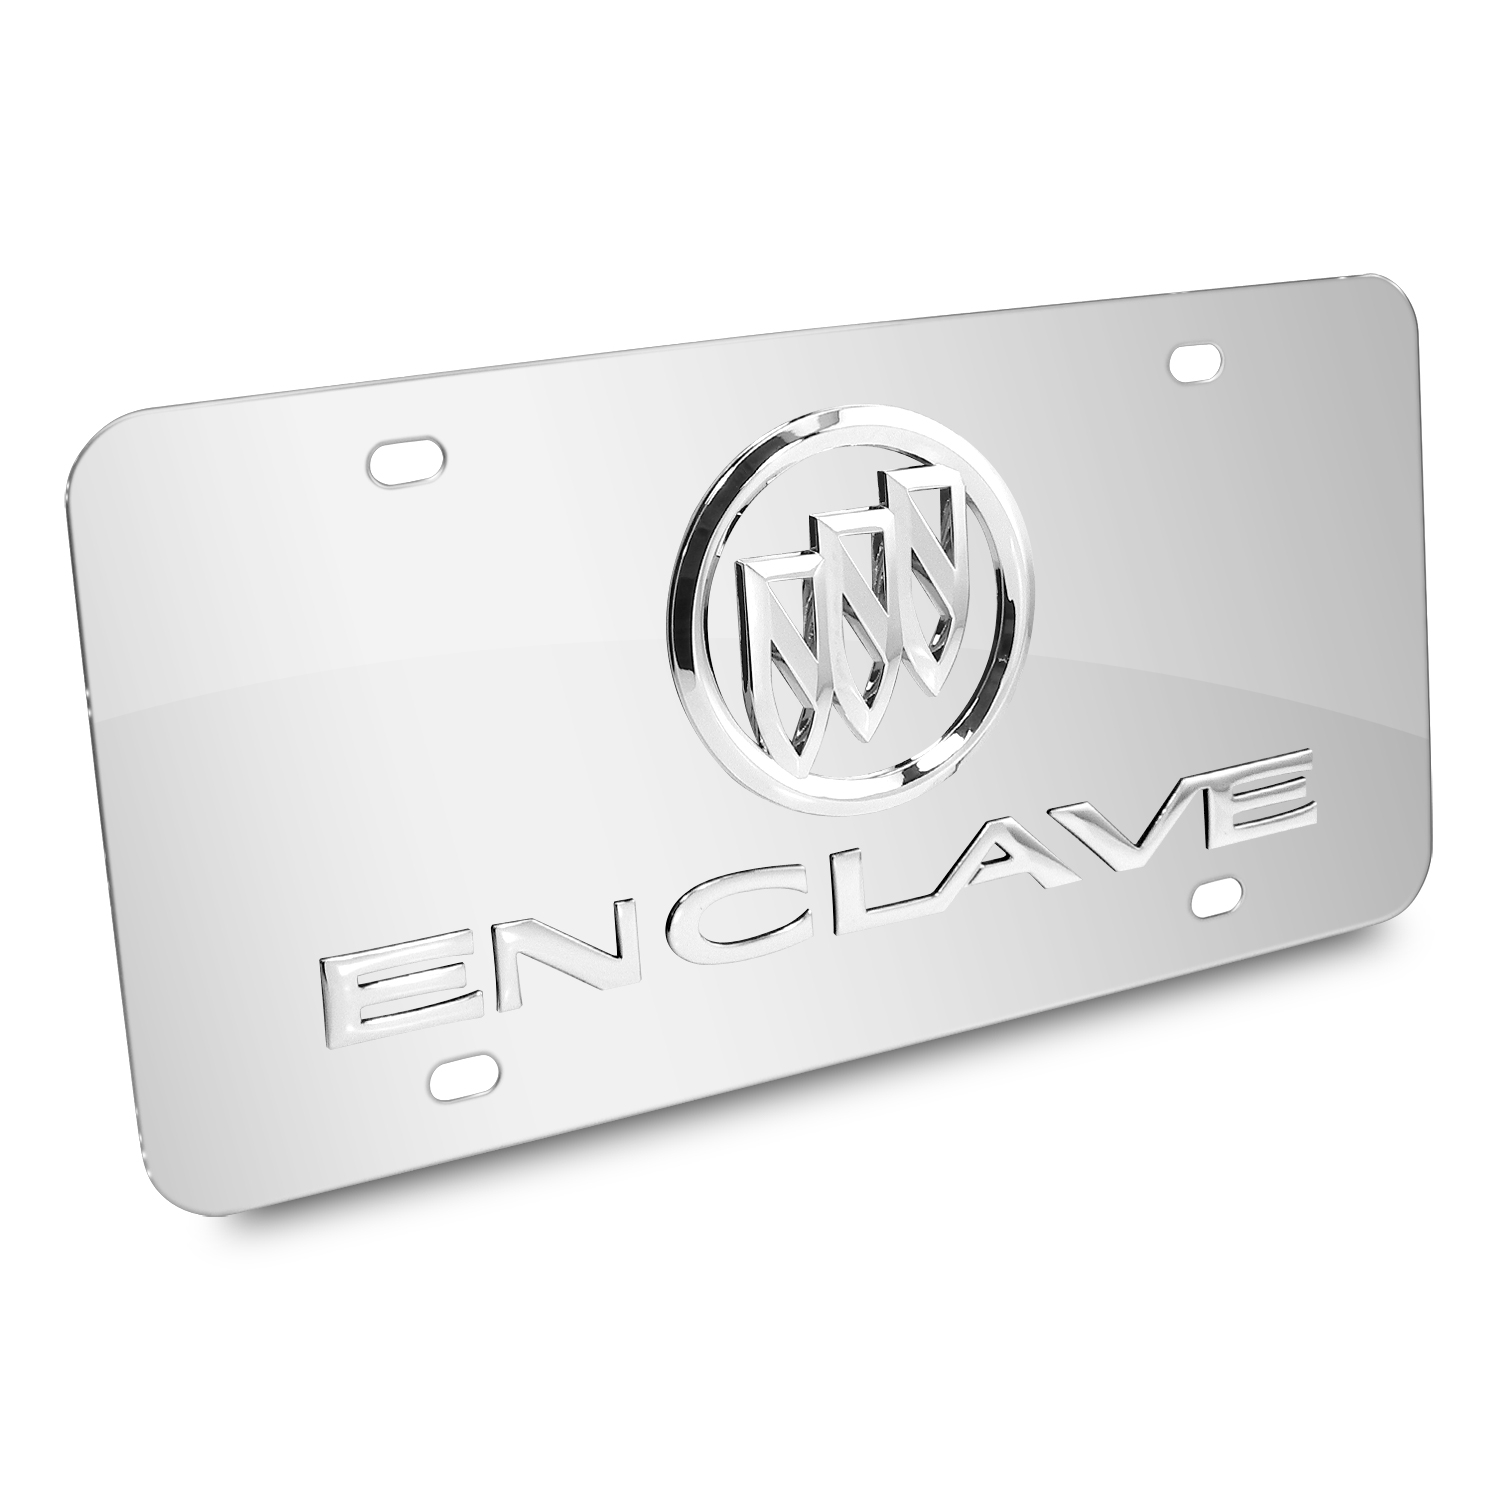 Buick Enclave 3D Logo Chrome Stainless Steel License Plate